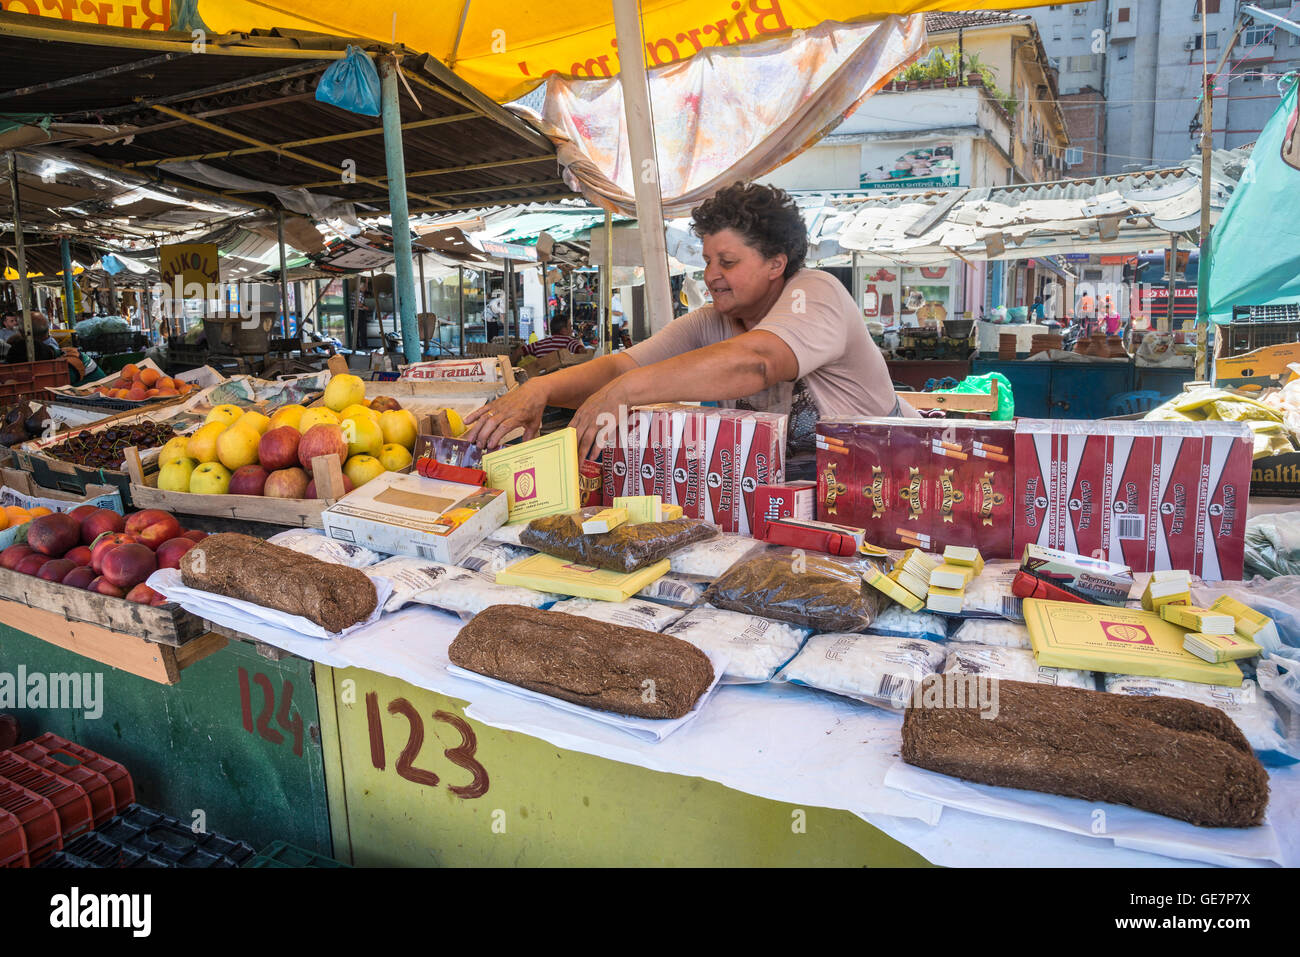 Stall selling tobacco and related products in the Pazari i Ri, central market, in Tirana, Albania, - Stock Image